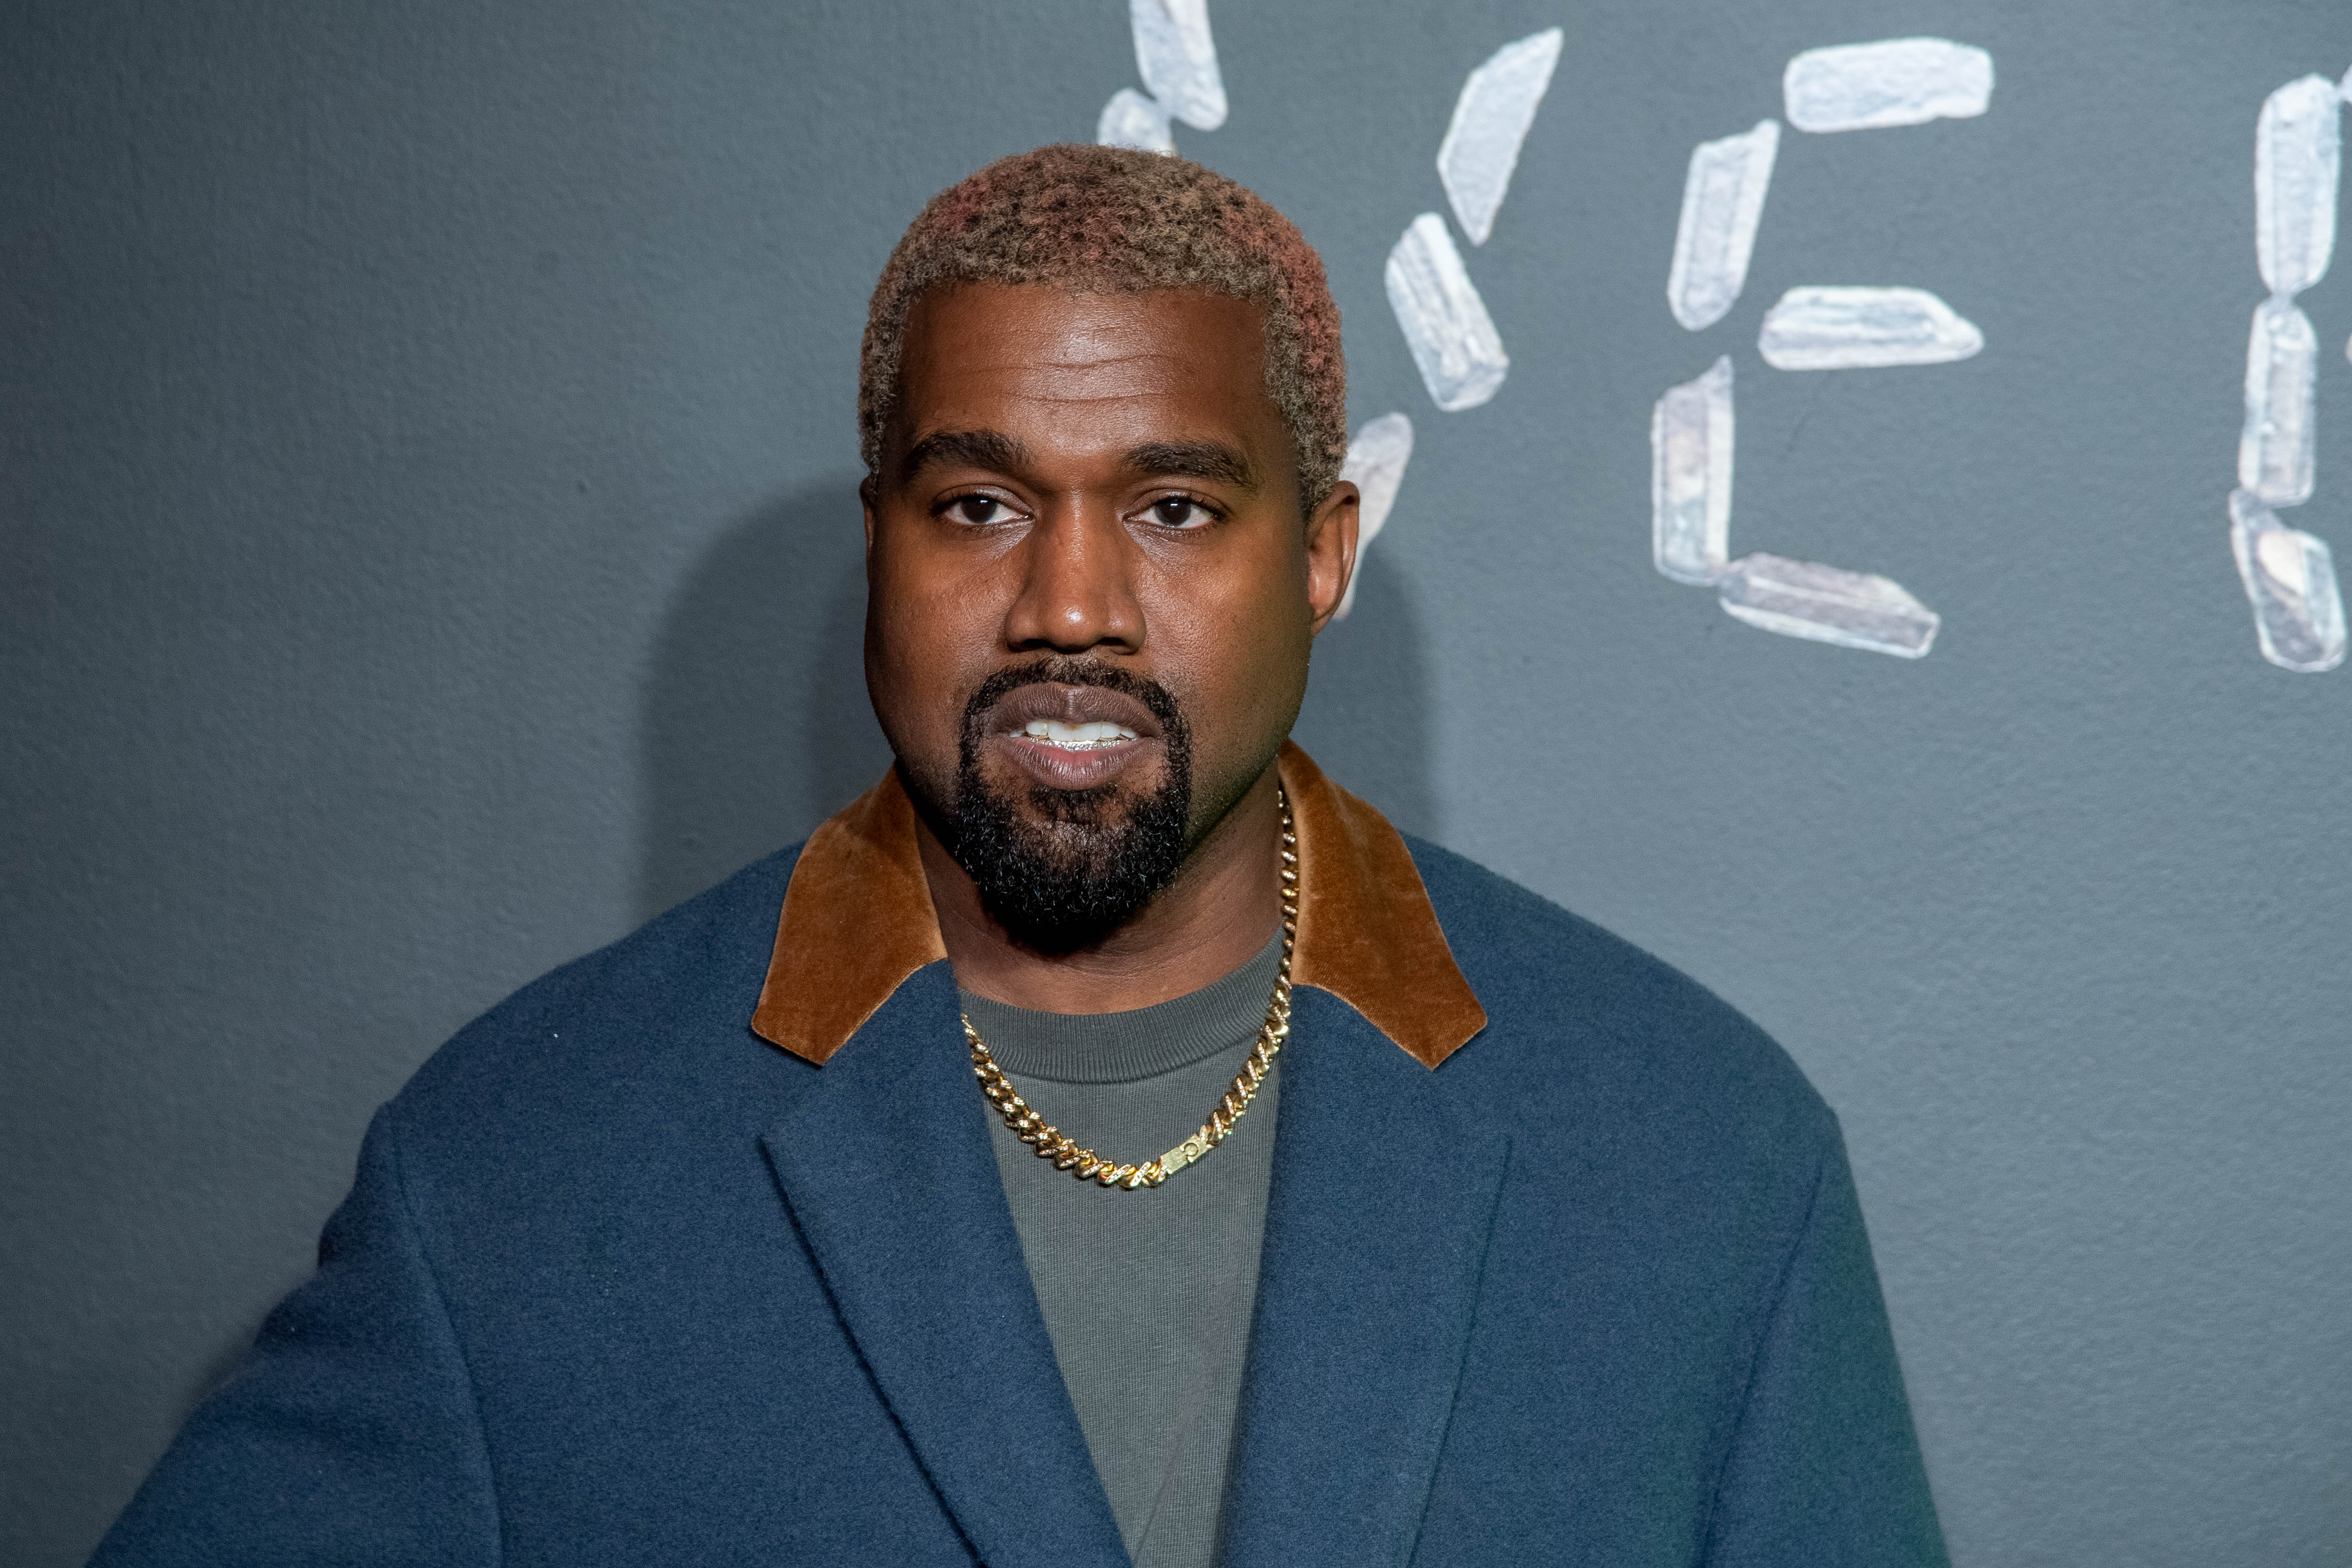 Kanye West attends the the Versace fall 2019 fashion show on December 02, 2018, in New York City. | Source: Getty Images.